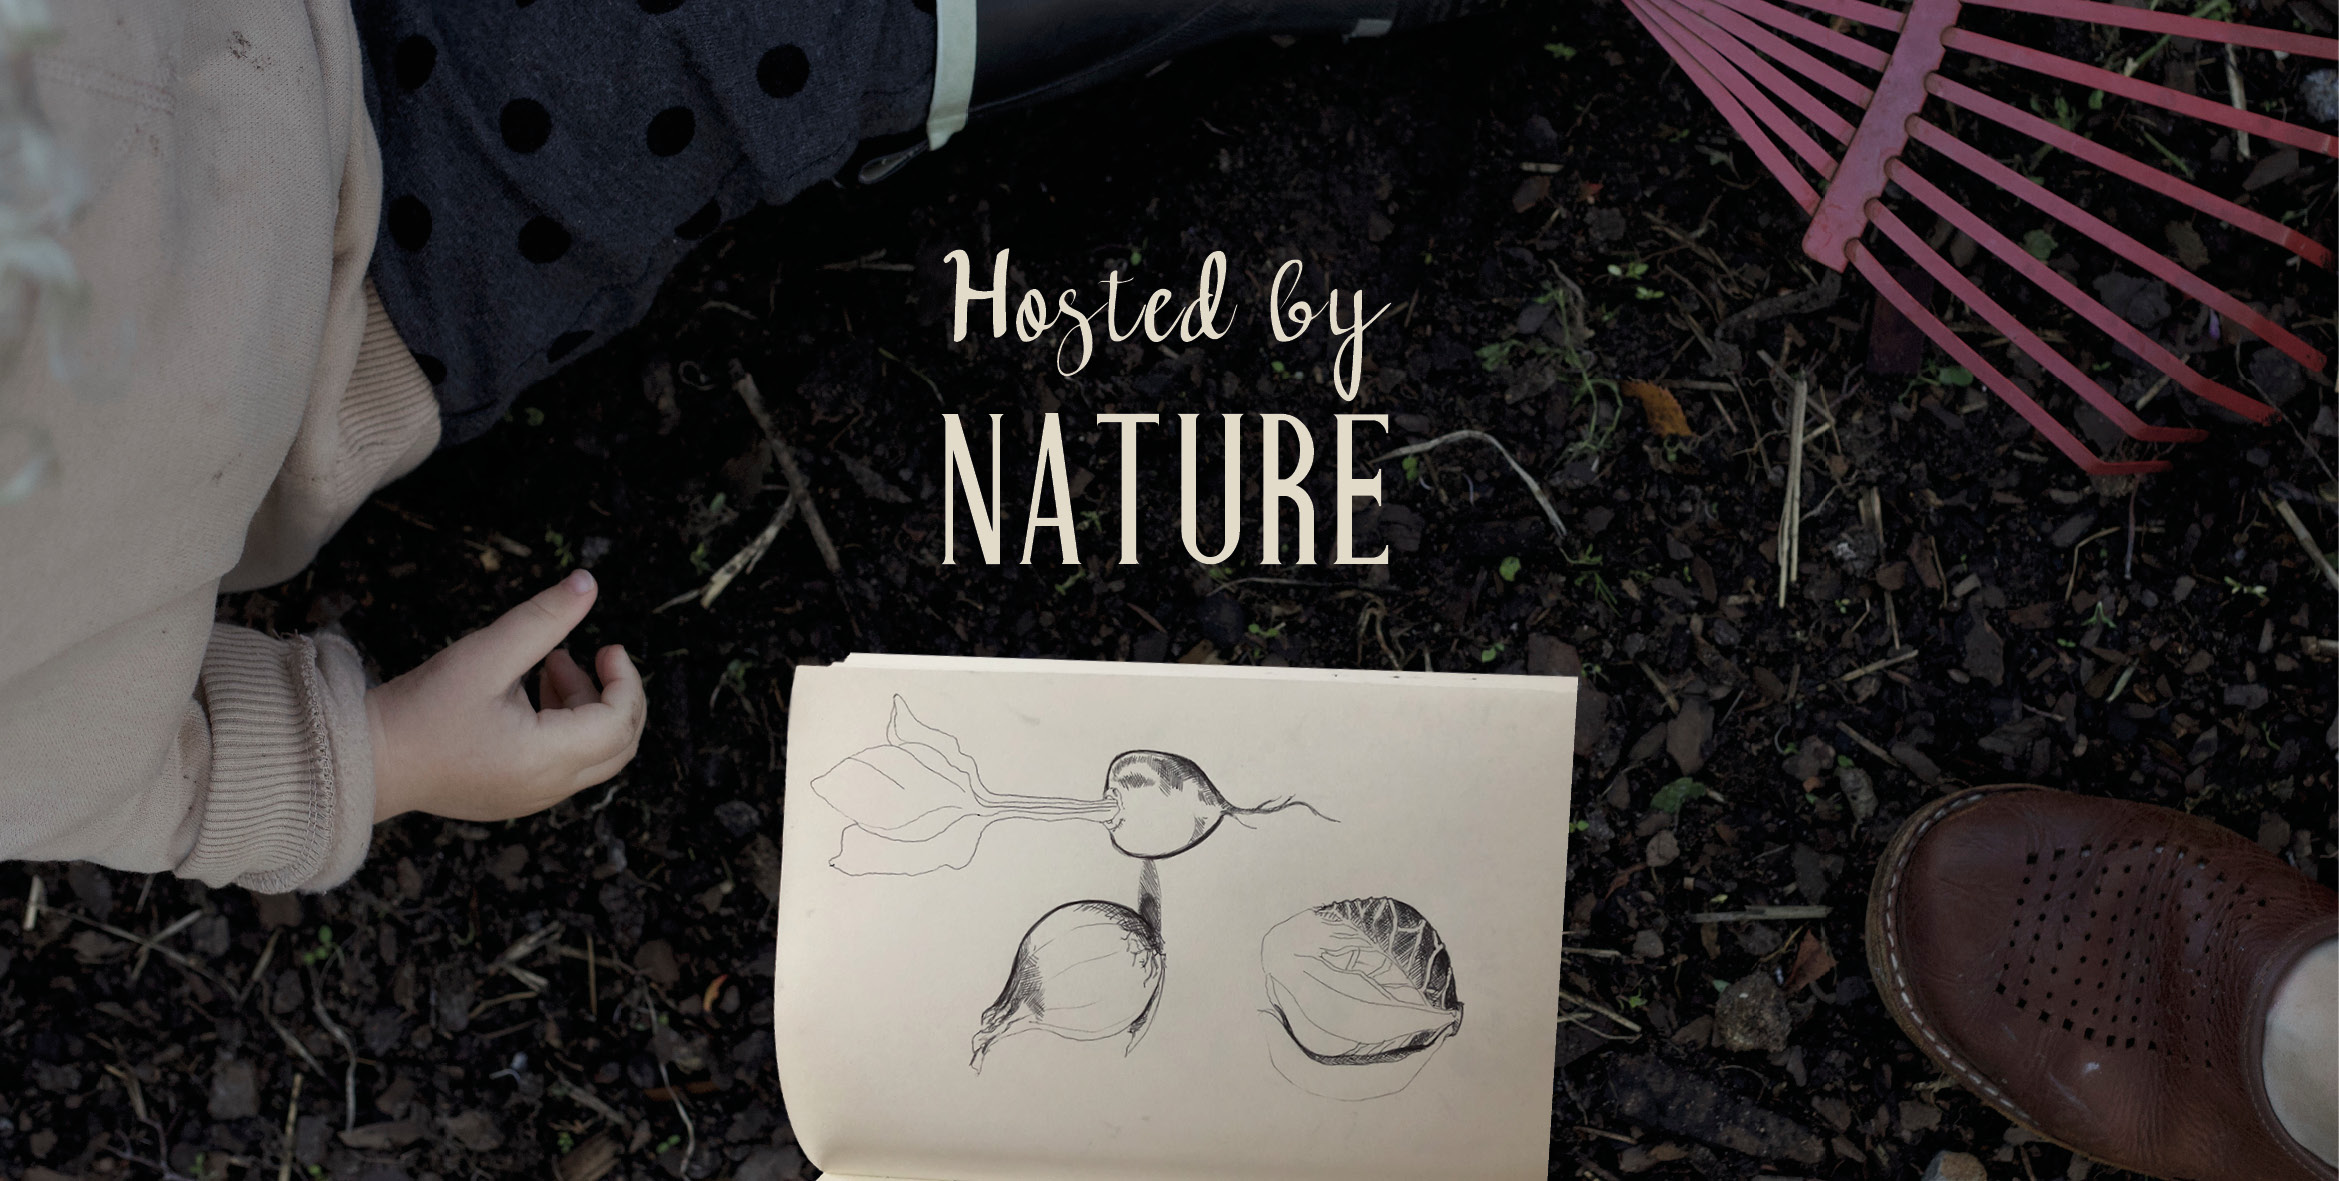 Hosted by nature -